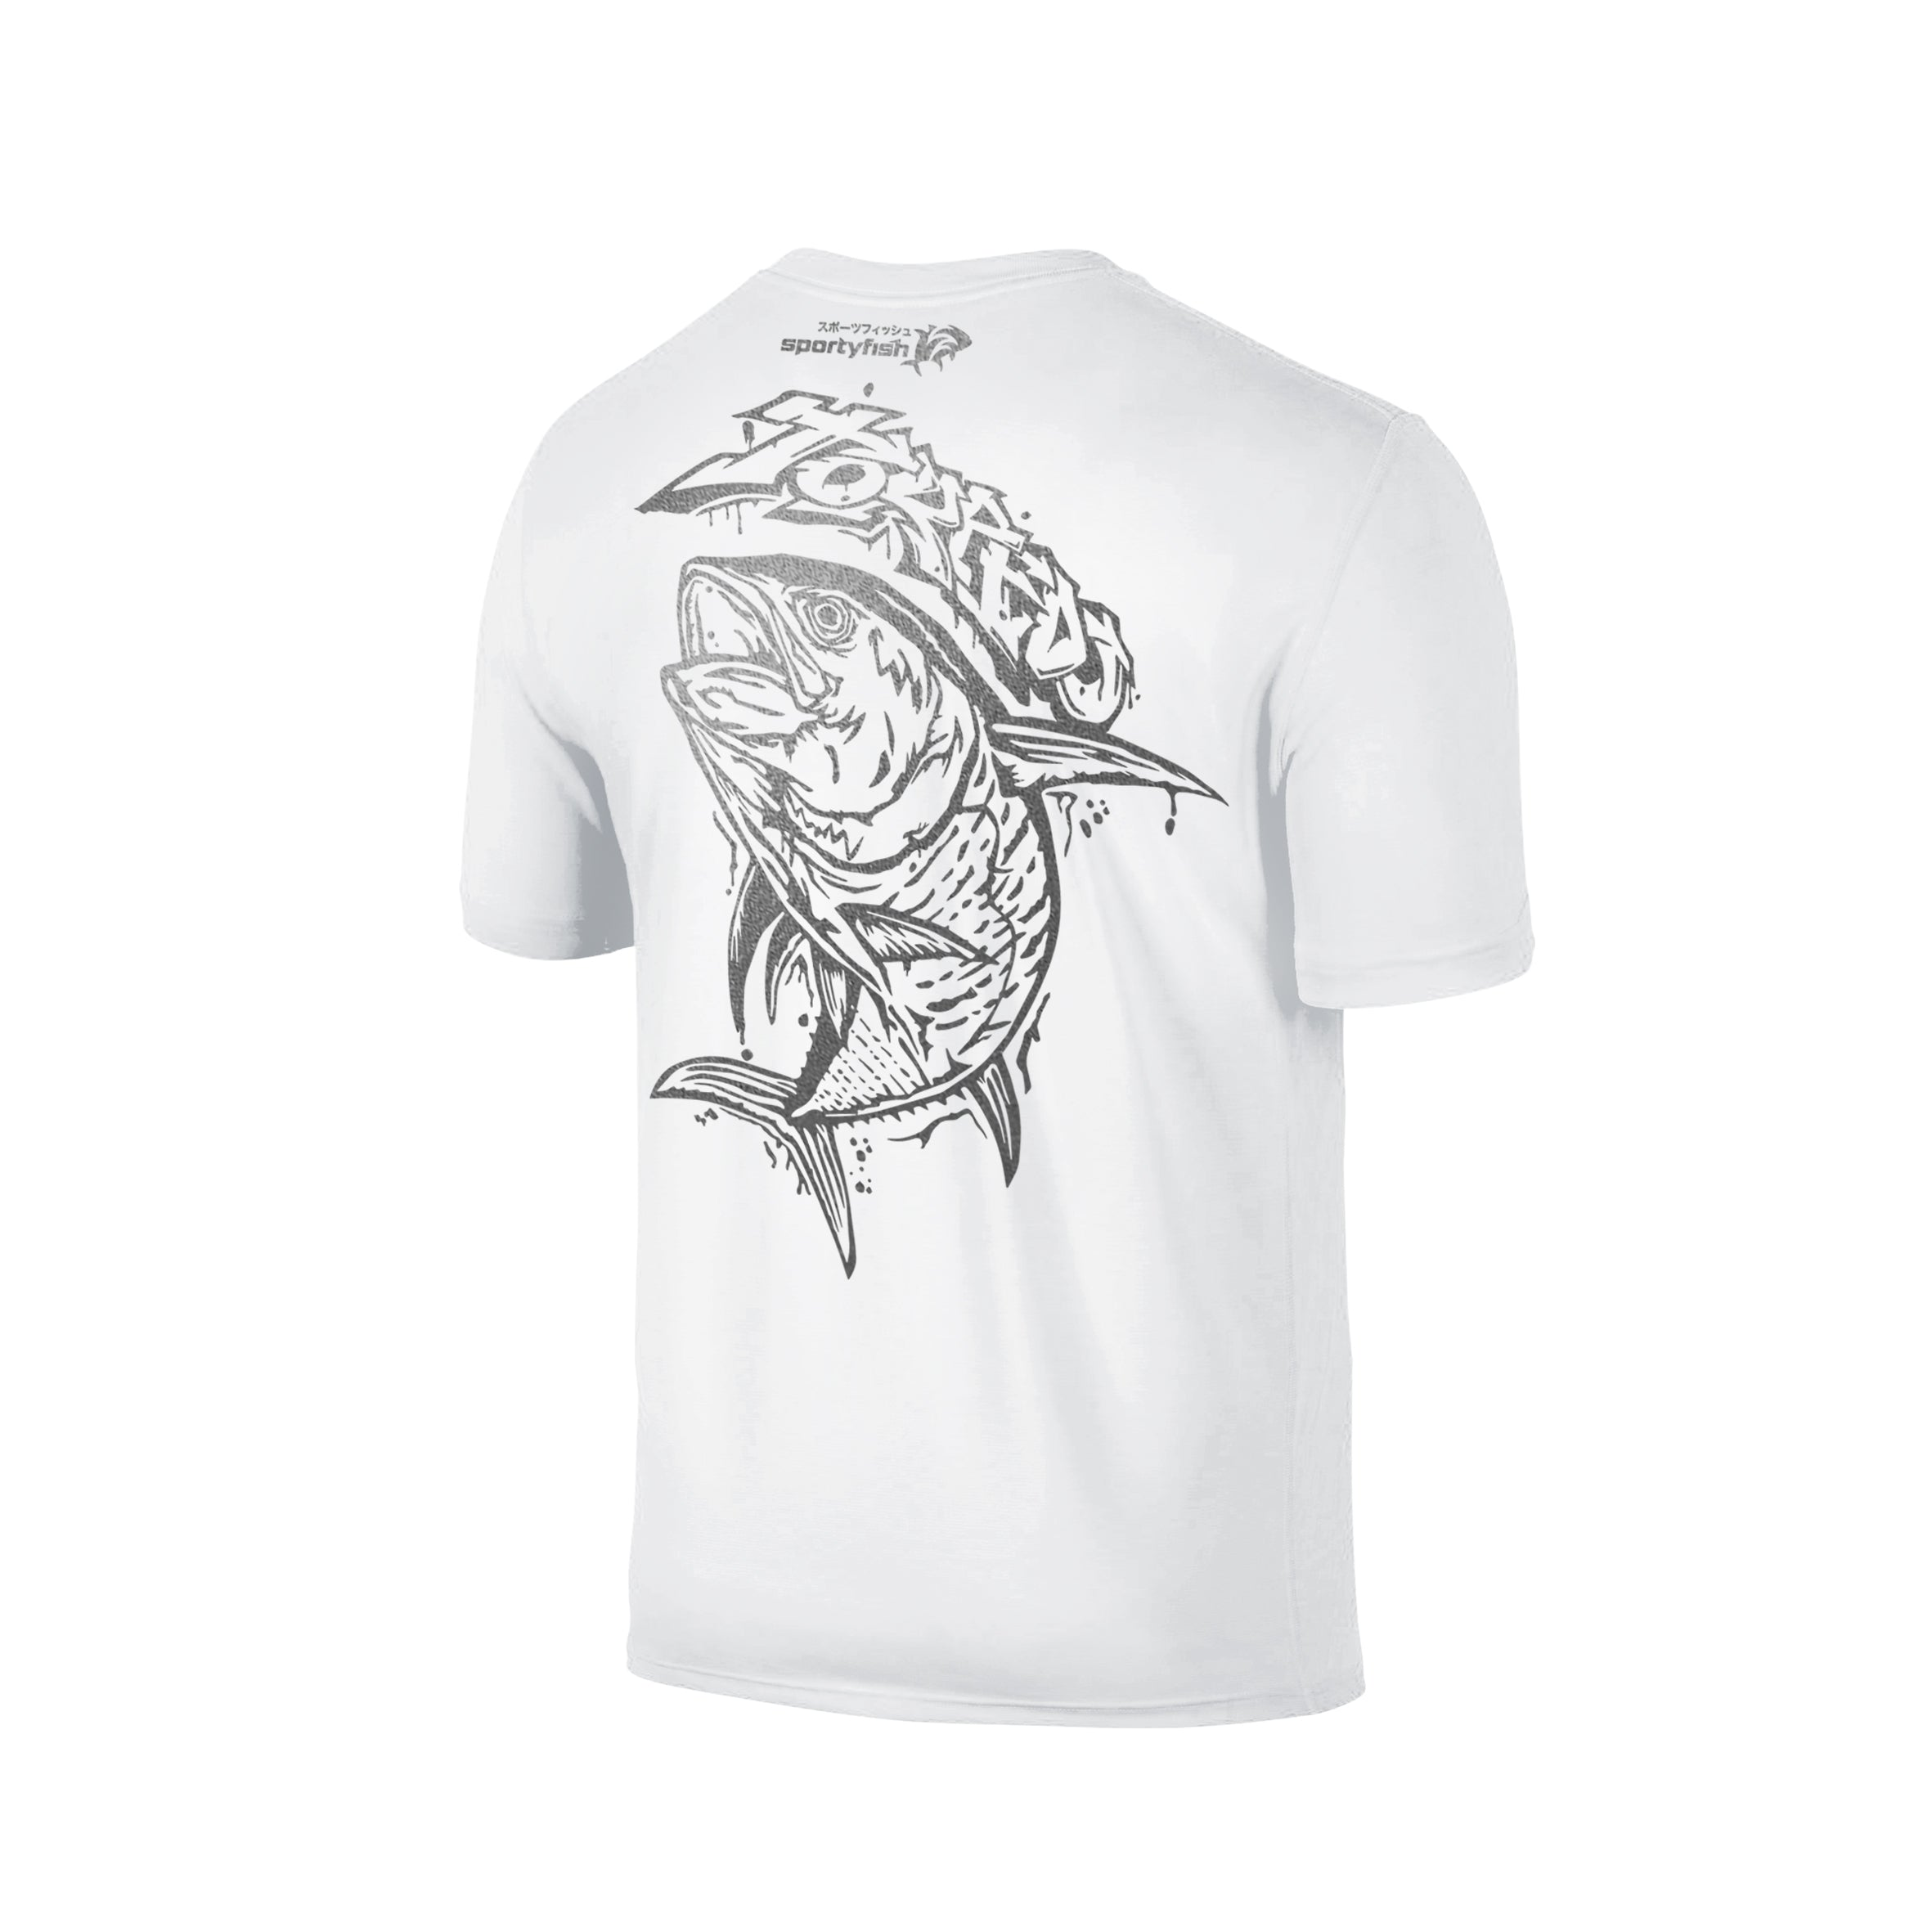 Wildstyle Graffiti Series White T-shirt(back view)Silver: Yellowfin Tuna